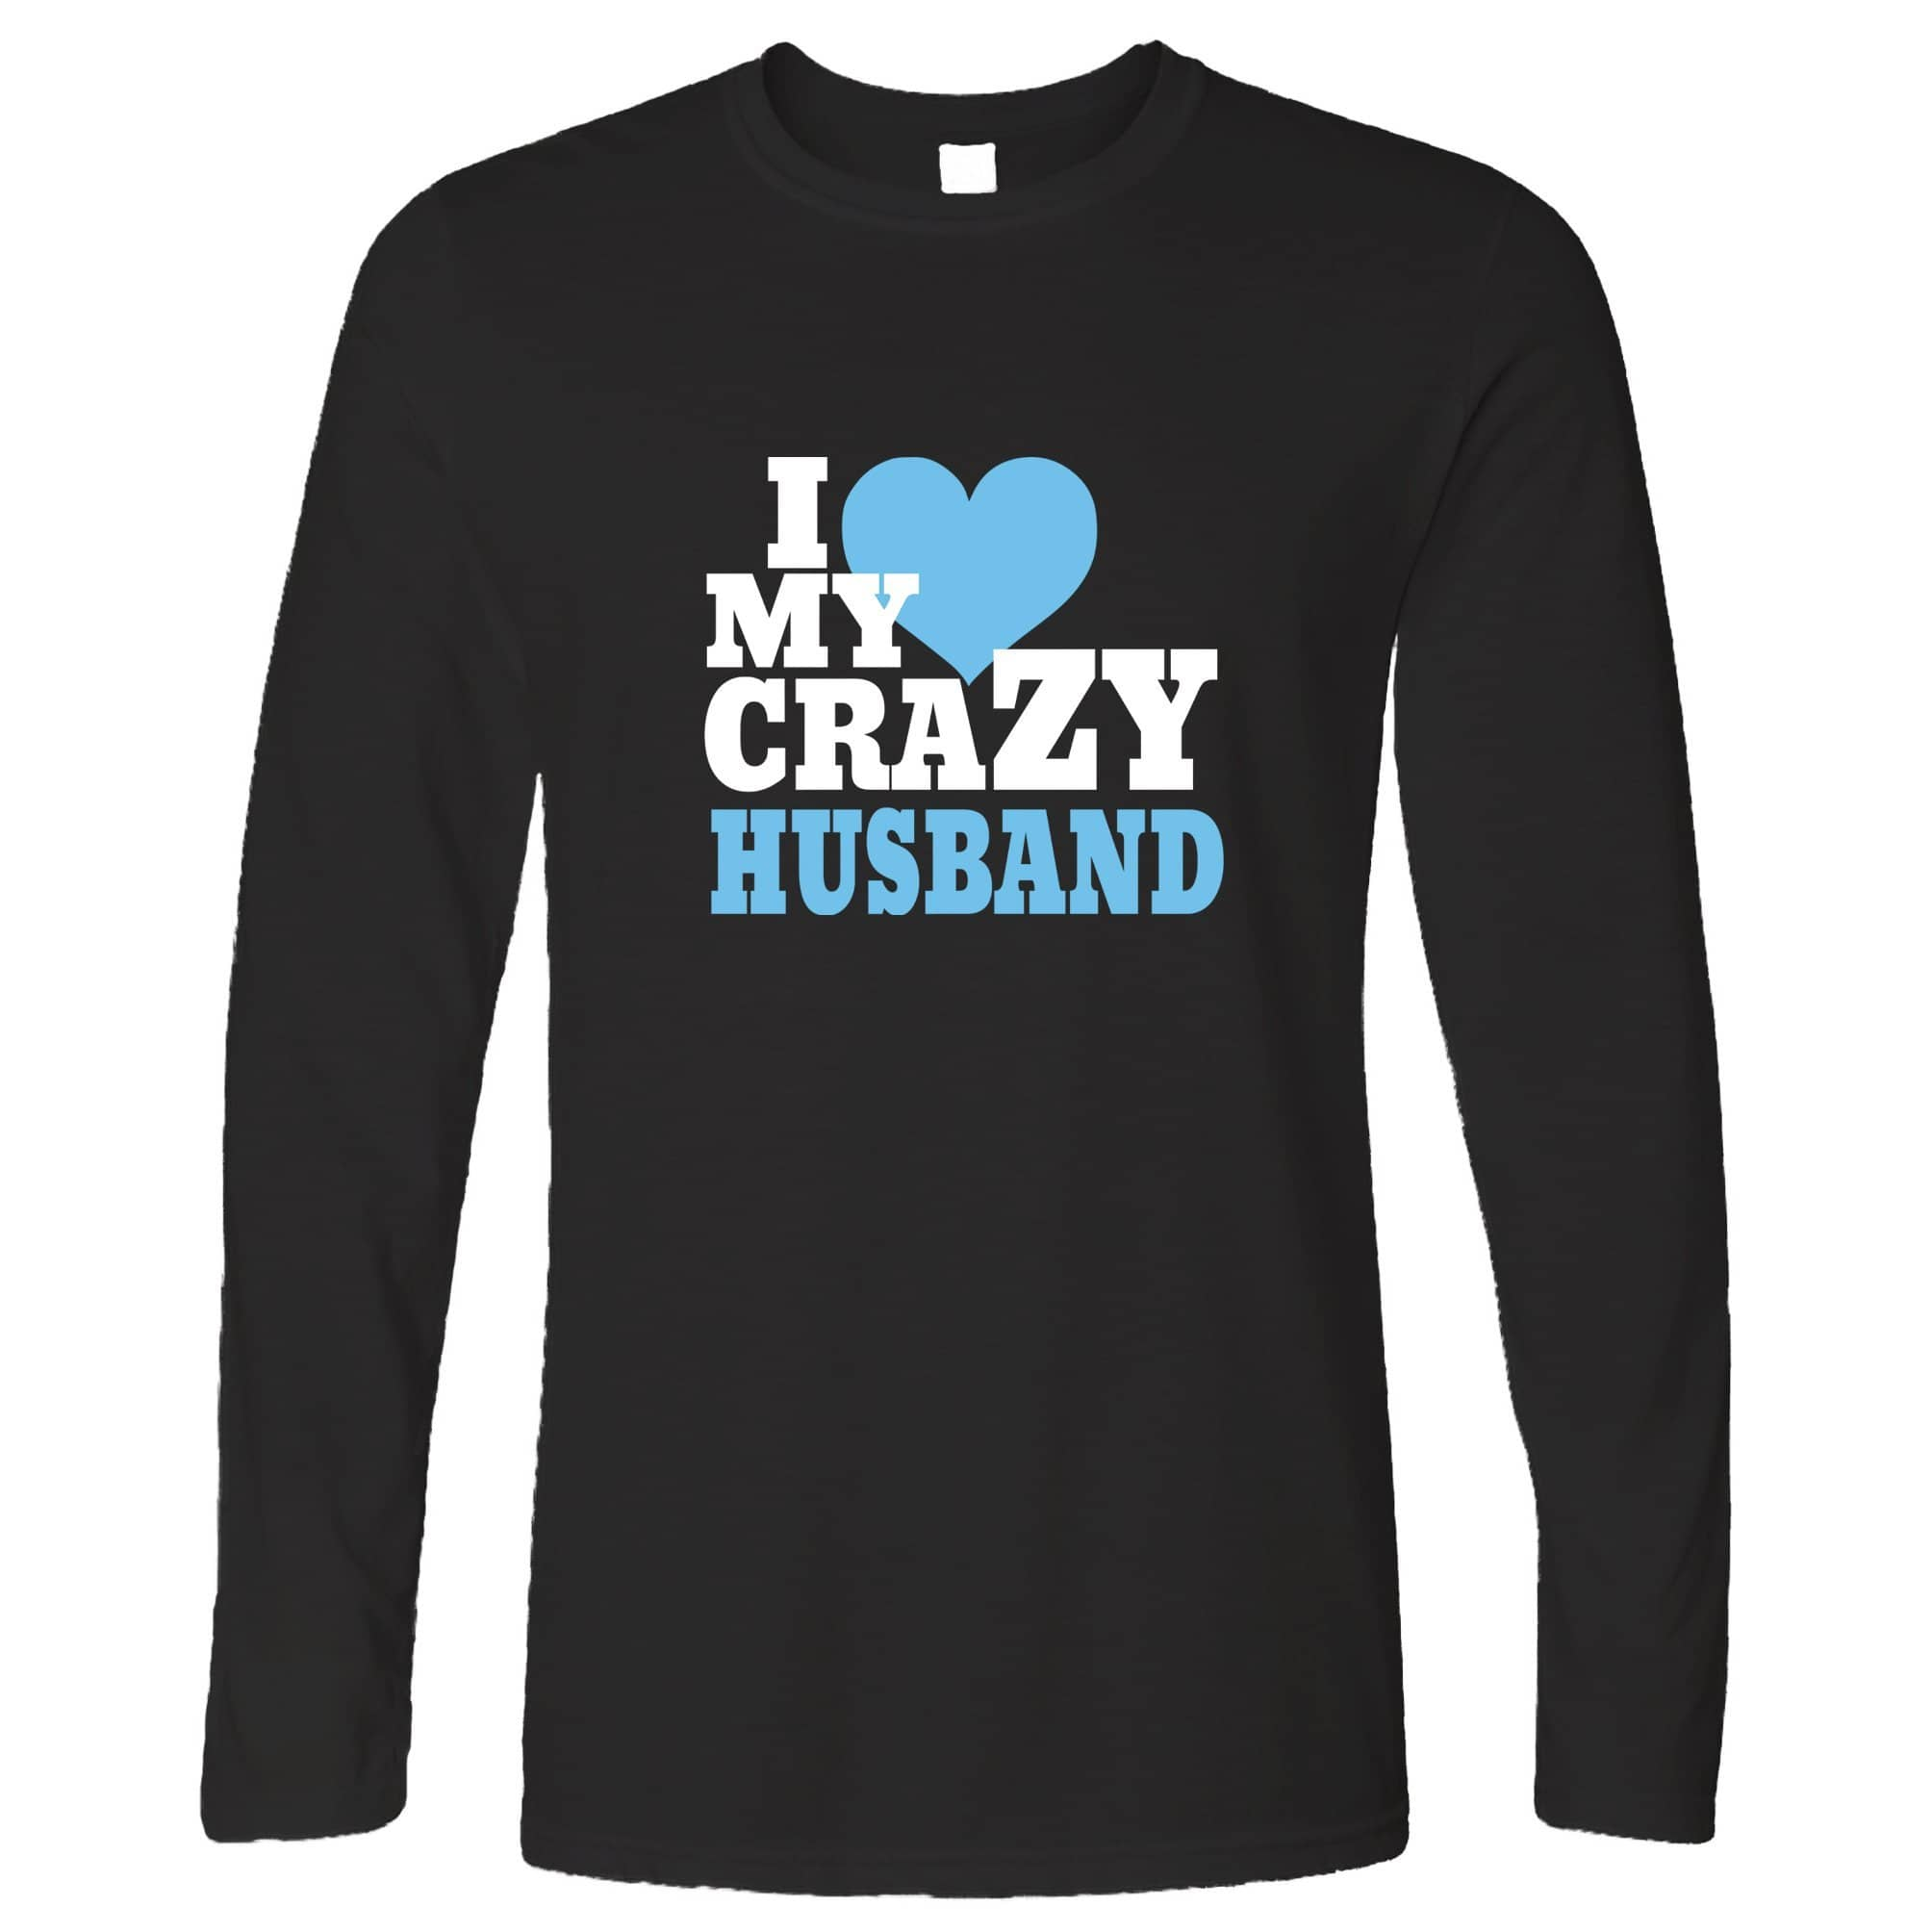 Fun Couples Long Sleeve I Love My Crazy Husband T-Shirt